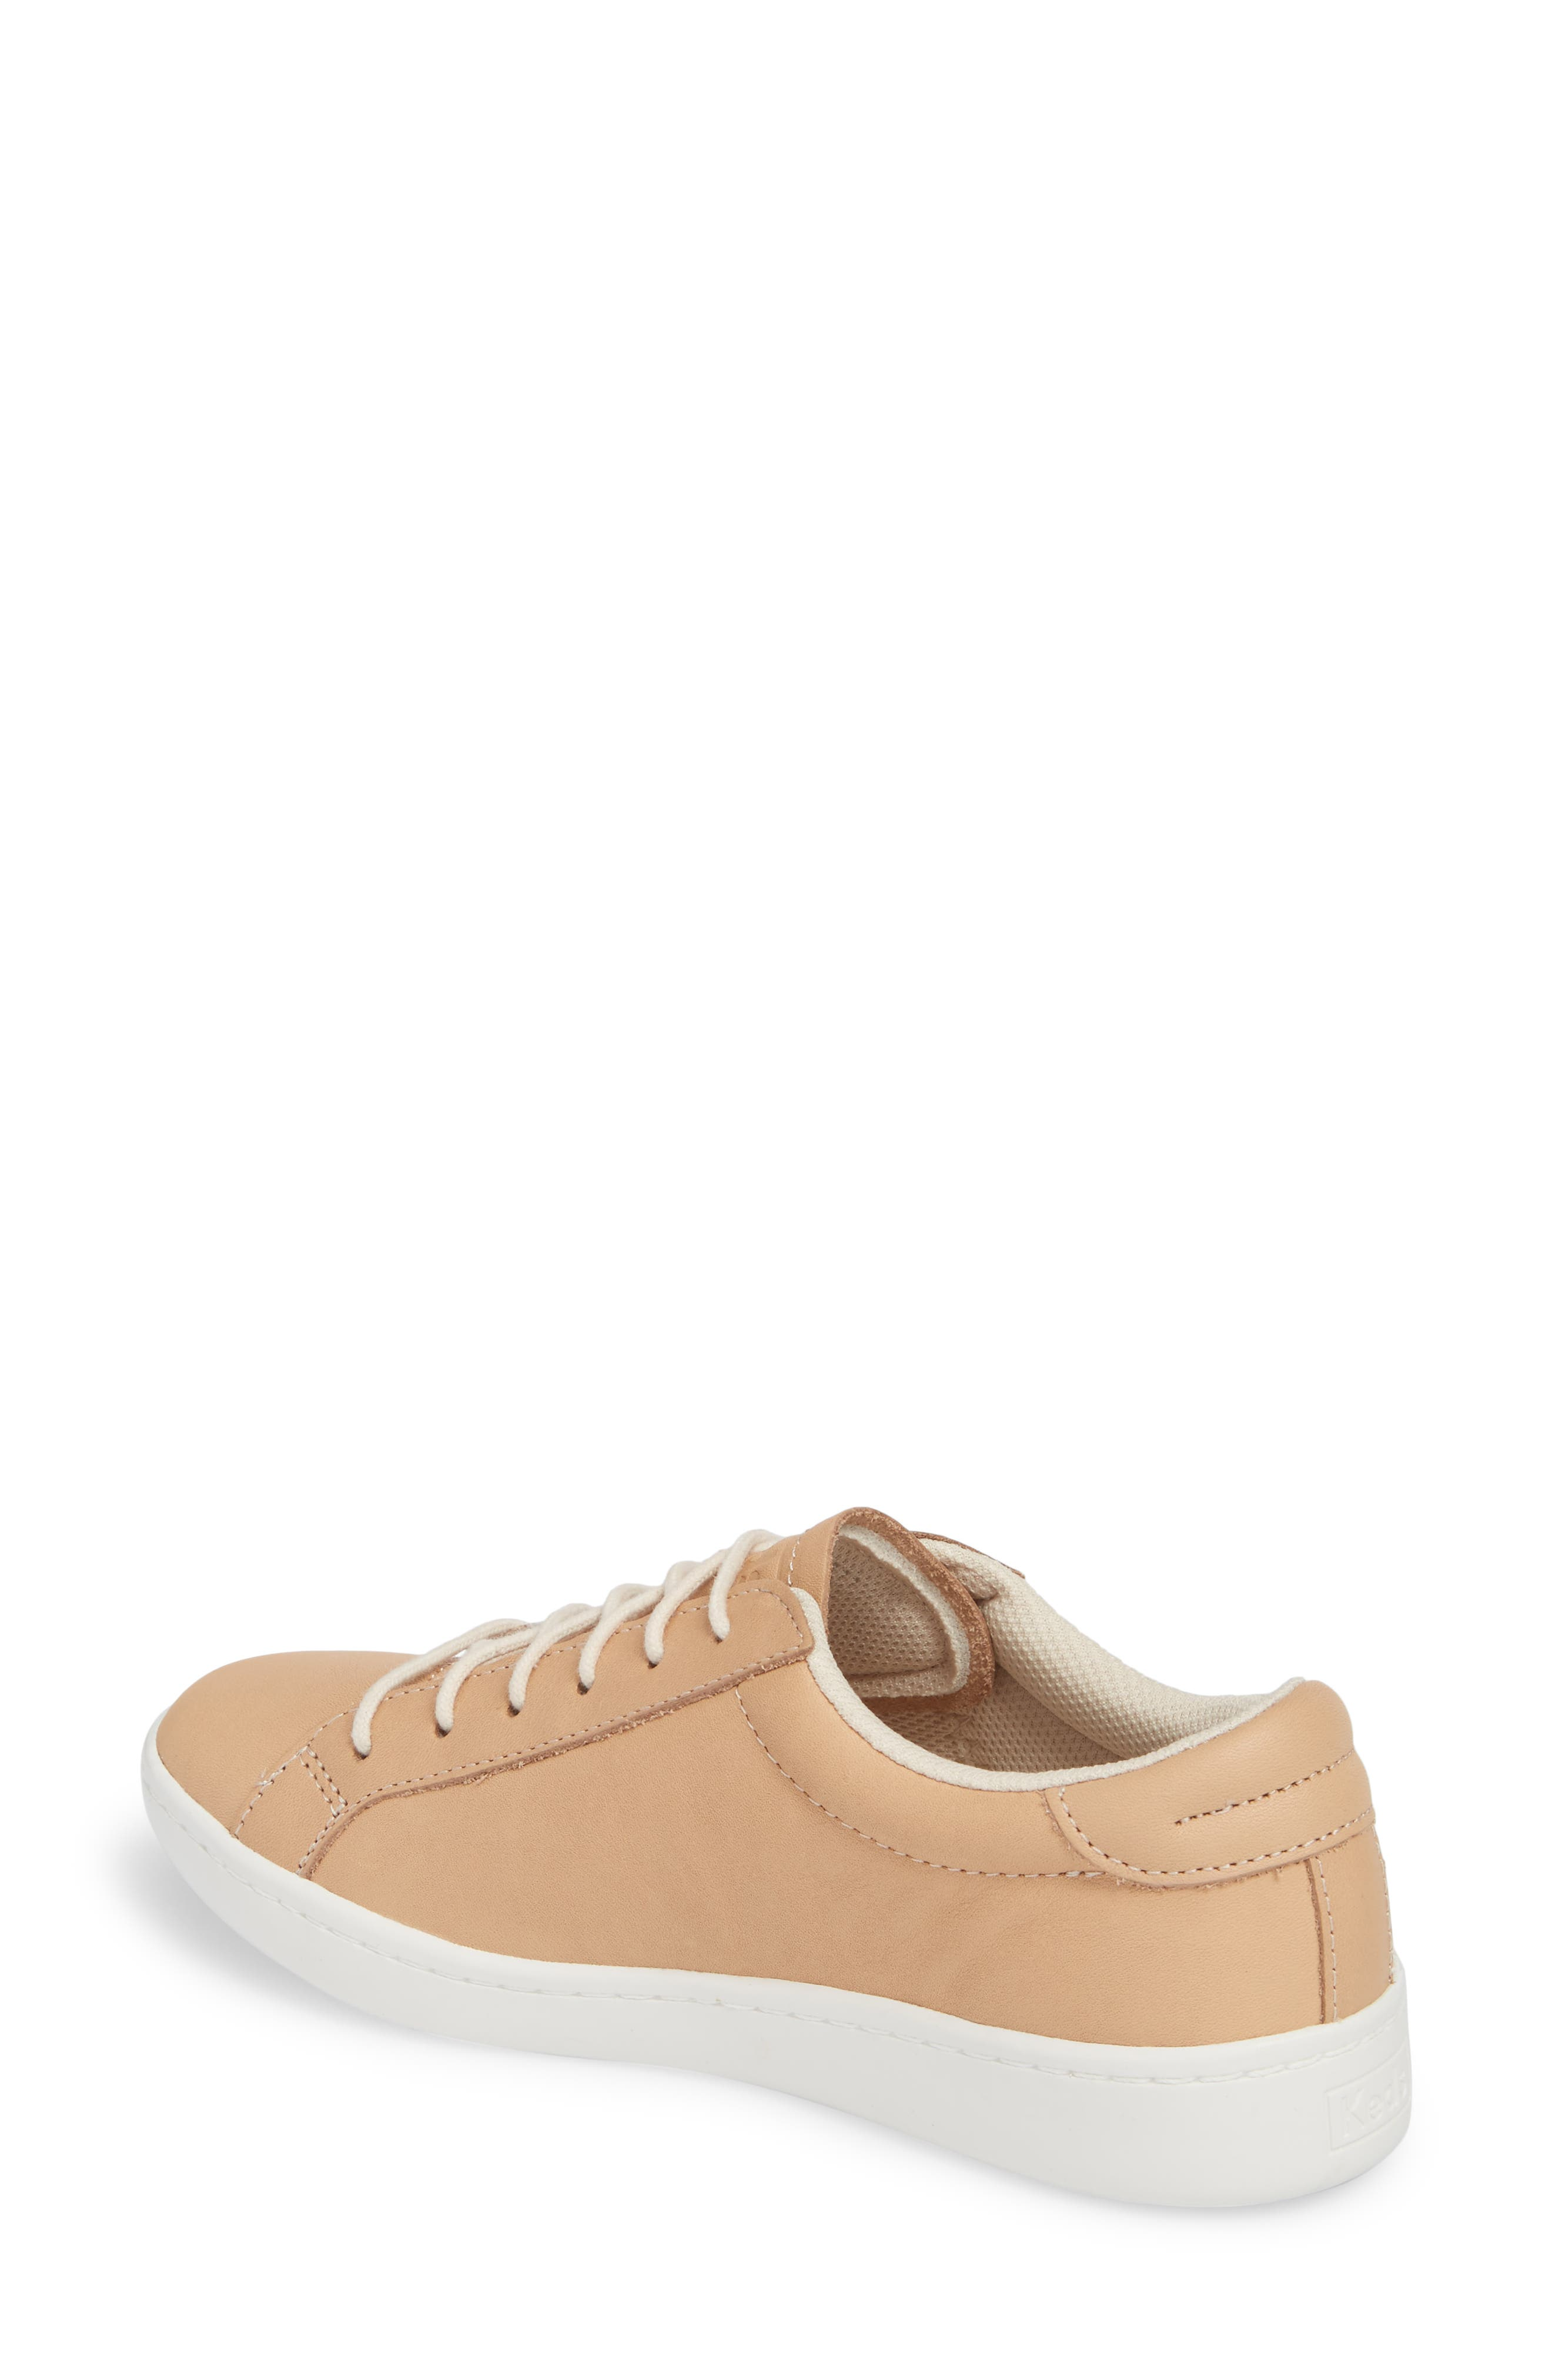 Ace Leather Sneaker,                             Alternate thumbnail 2, color,